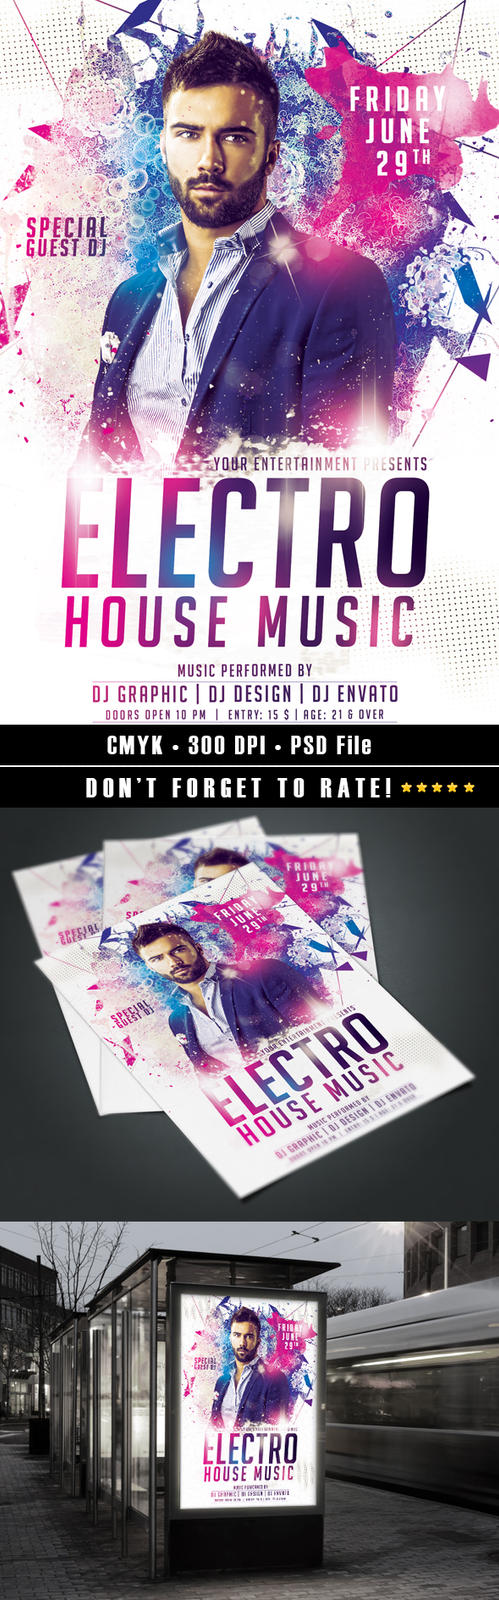 Electro House Flyer by HDesign85